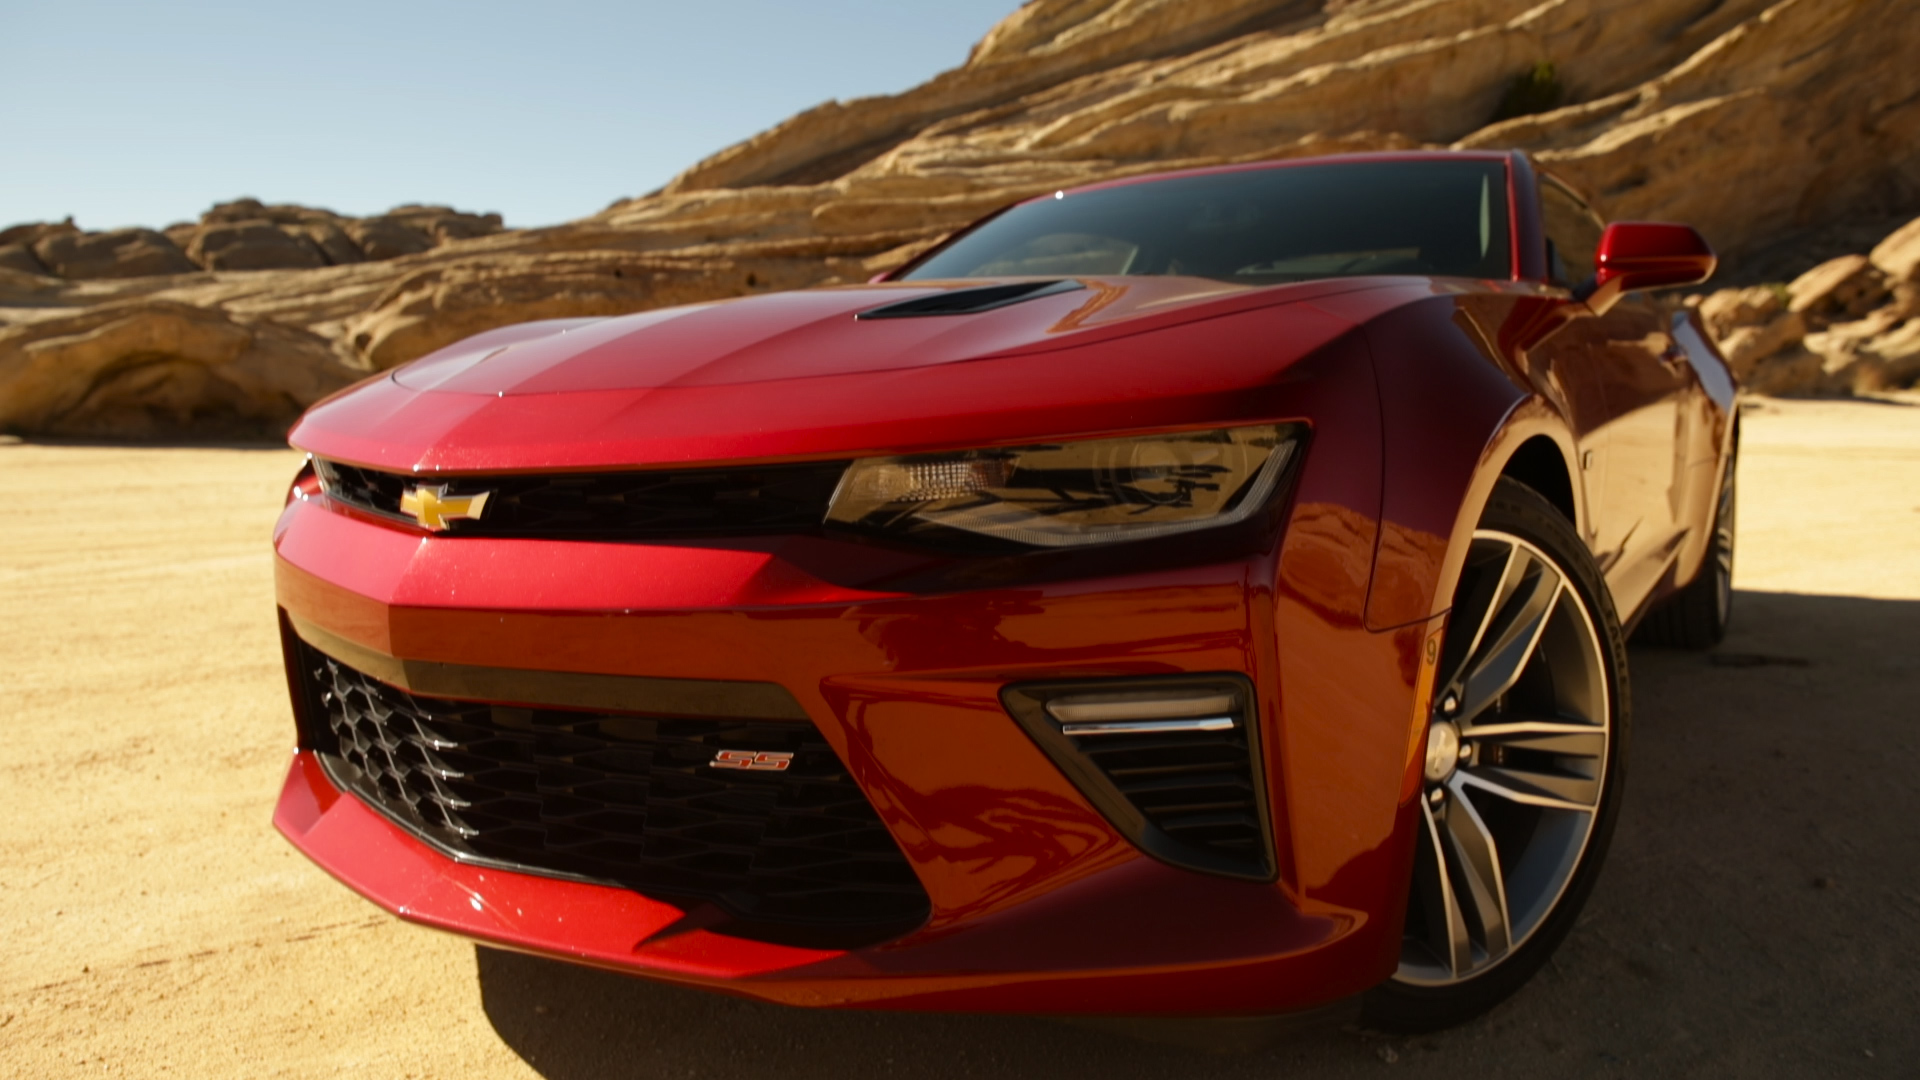 2016 chevrolet camaro ss review video bloomberg. Black Bedroom Furniture Sets. Home Design Ideas